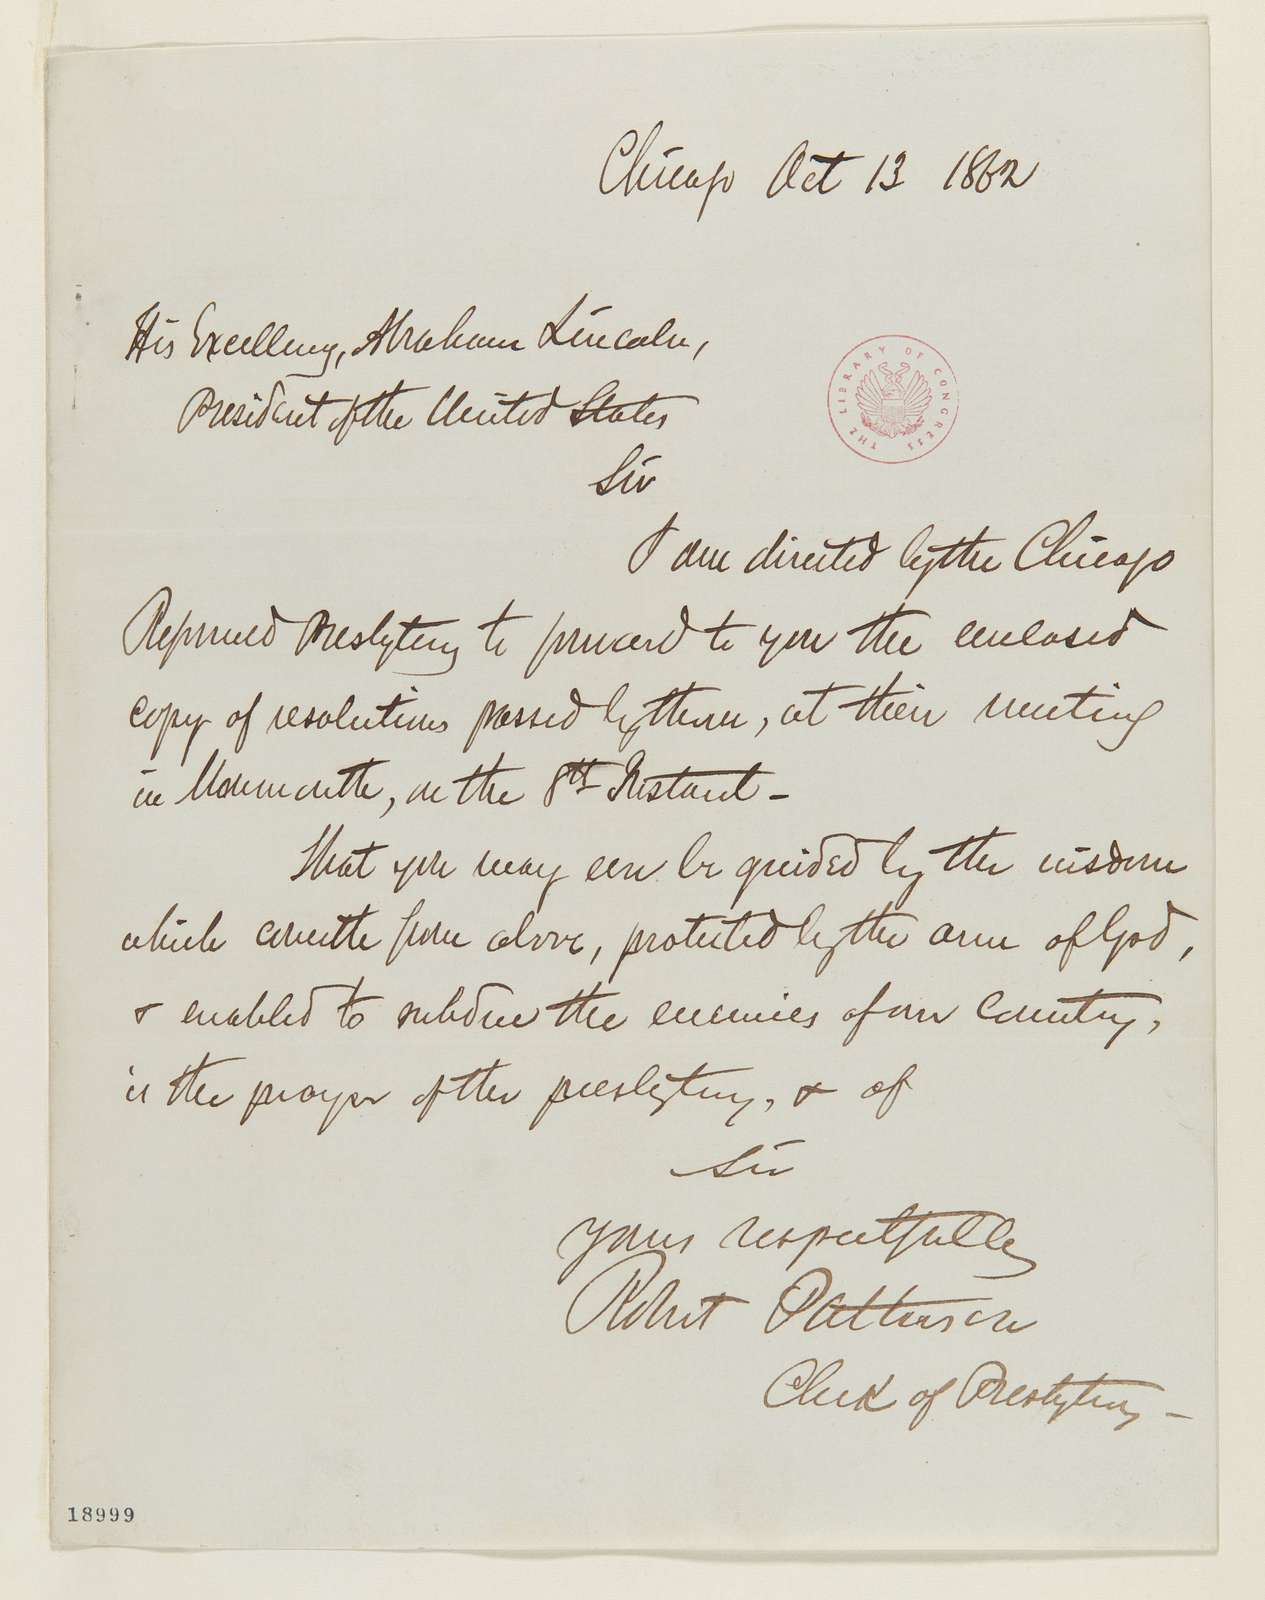 Abraham Lincoln papers: Series 1. General Correspondence. 1833-1916: Robert Patterson to Abraham Lincoln, Monday, October 13, 1862 (Sends resolutions)